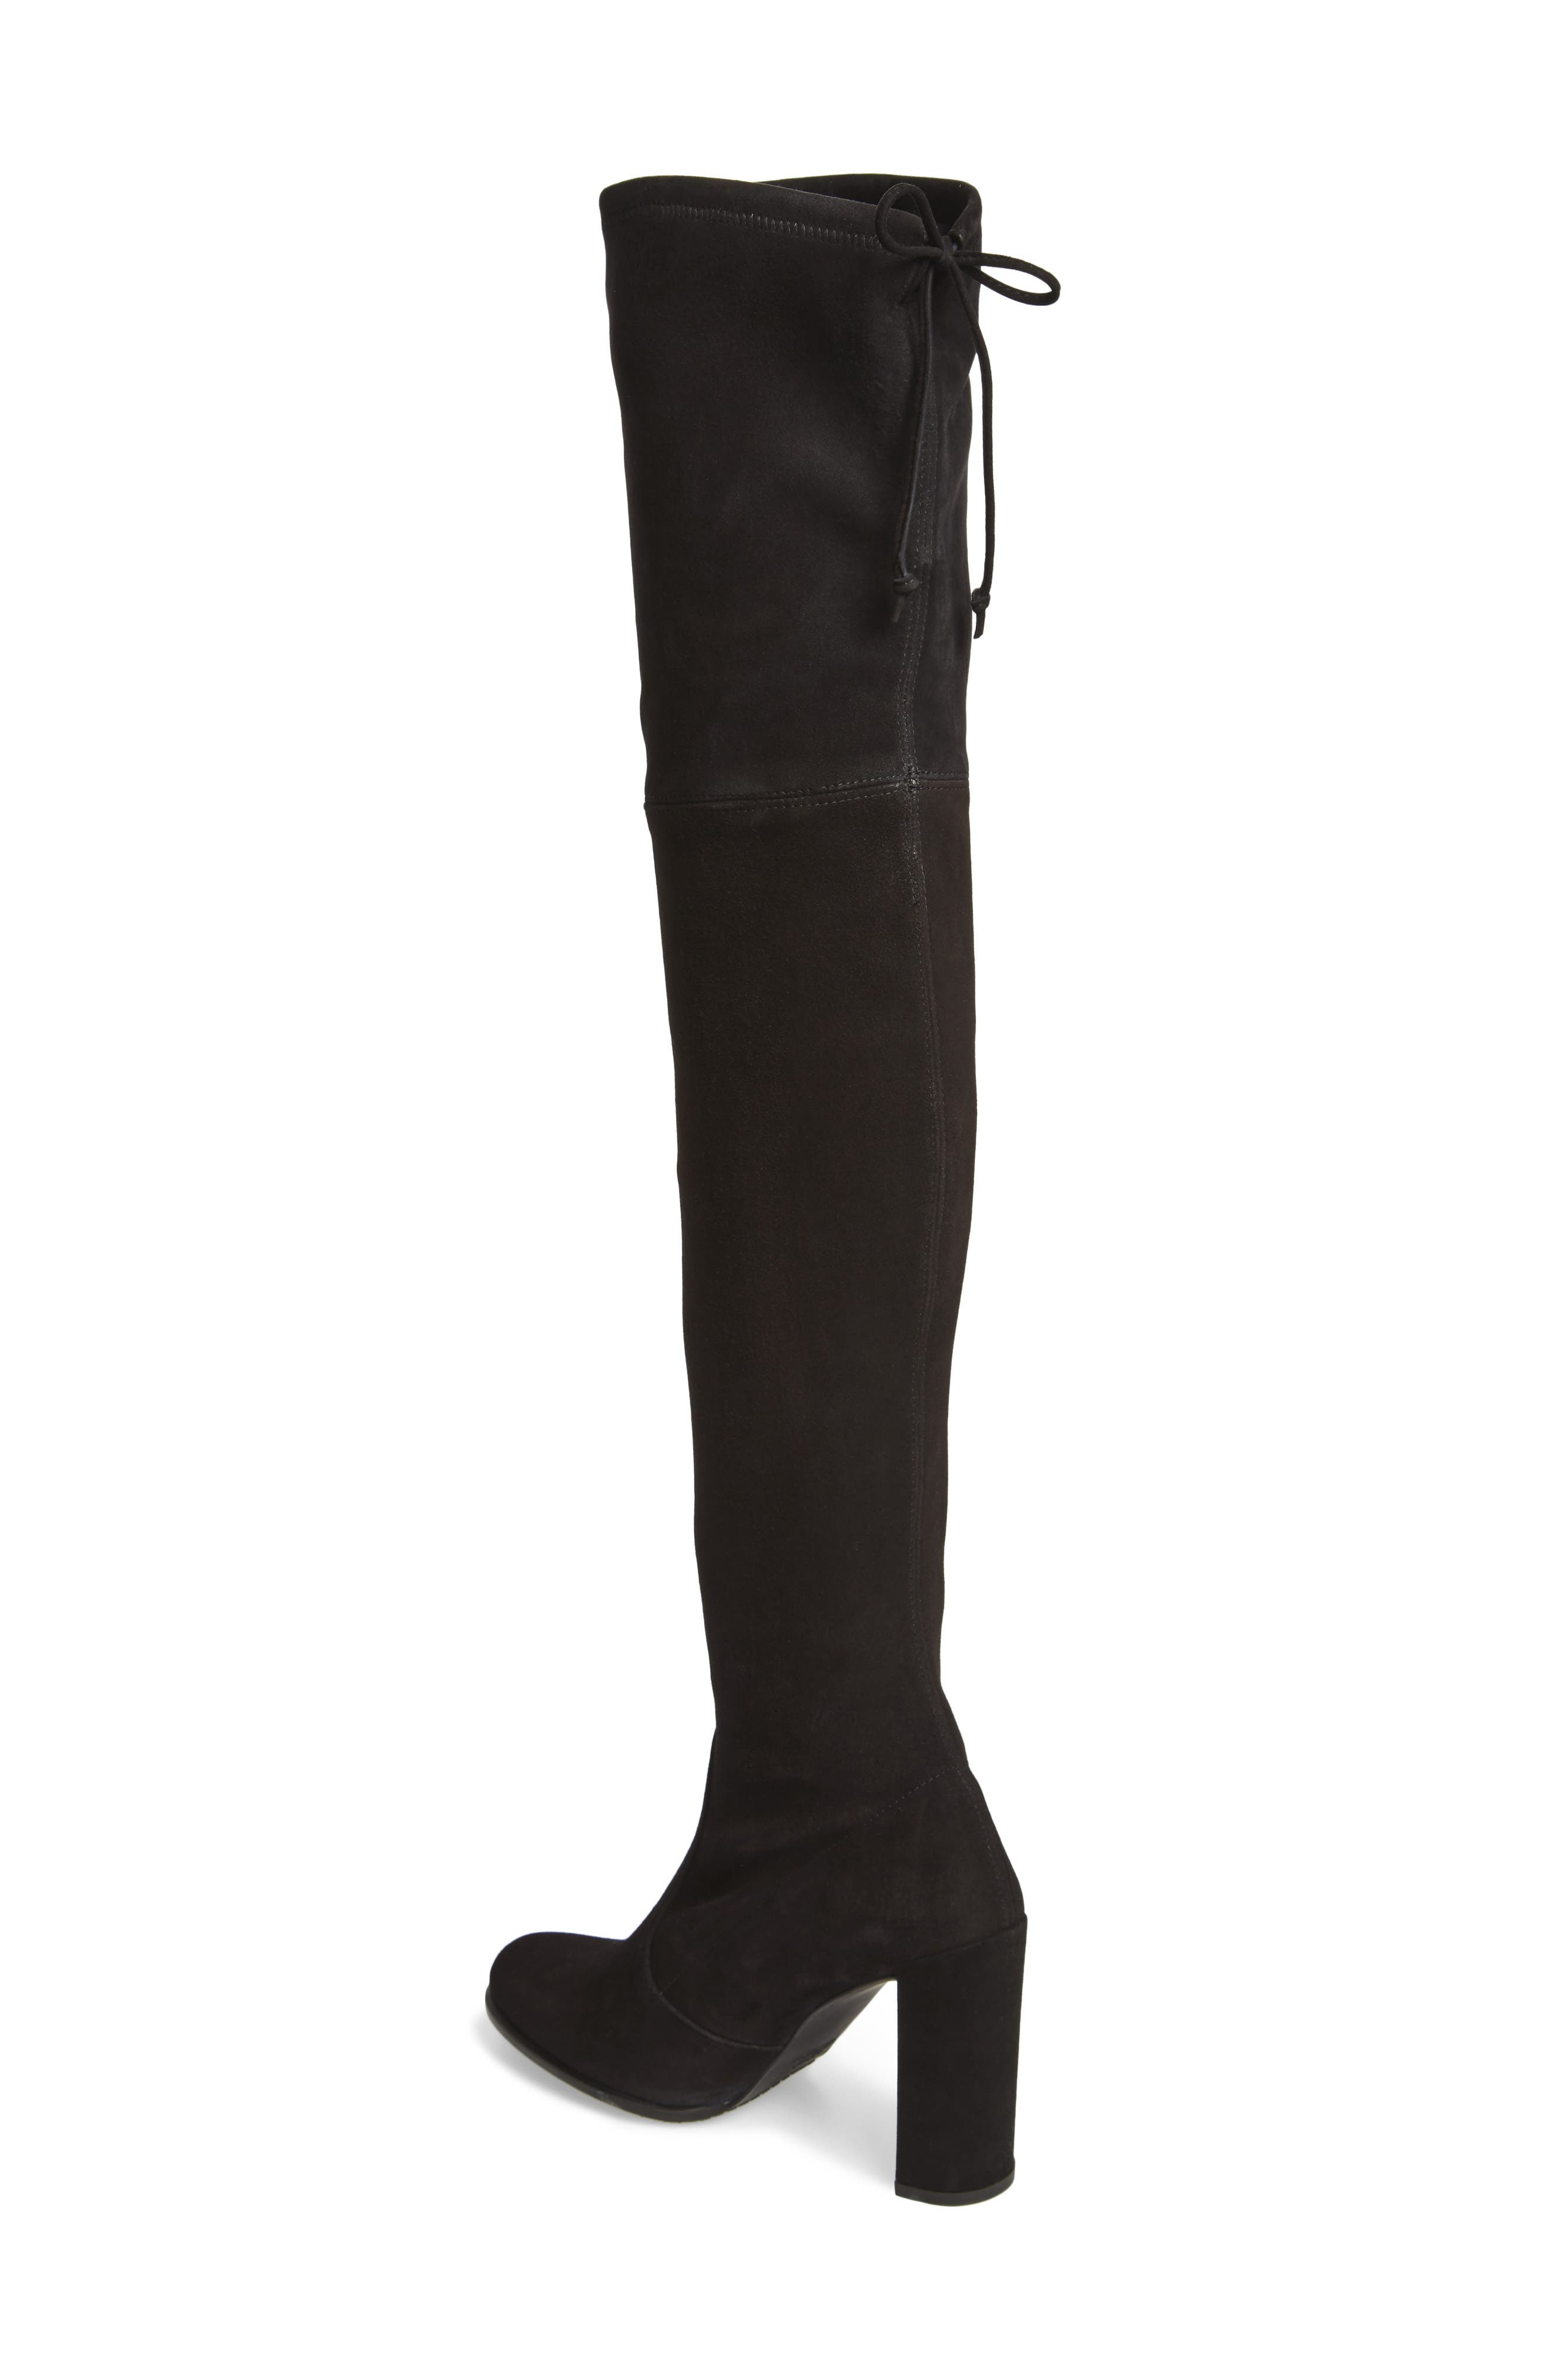 Hiline Over the Knee Boot,                             Alternate thumbnail 2, color,                             Black Suede